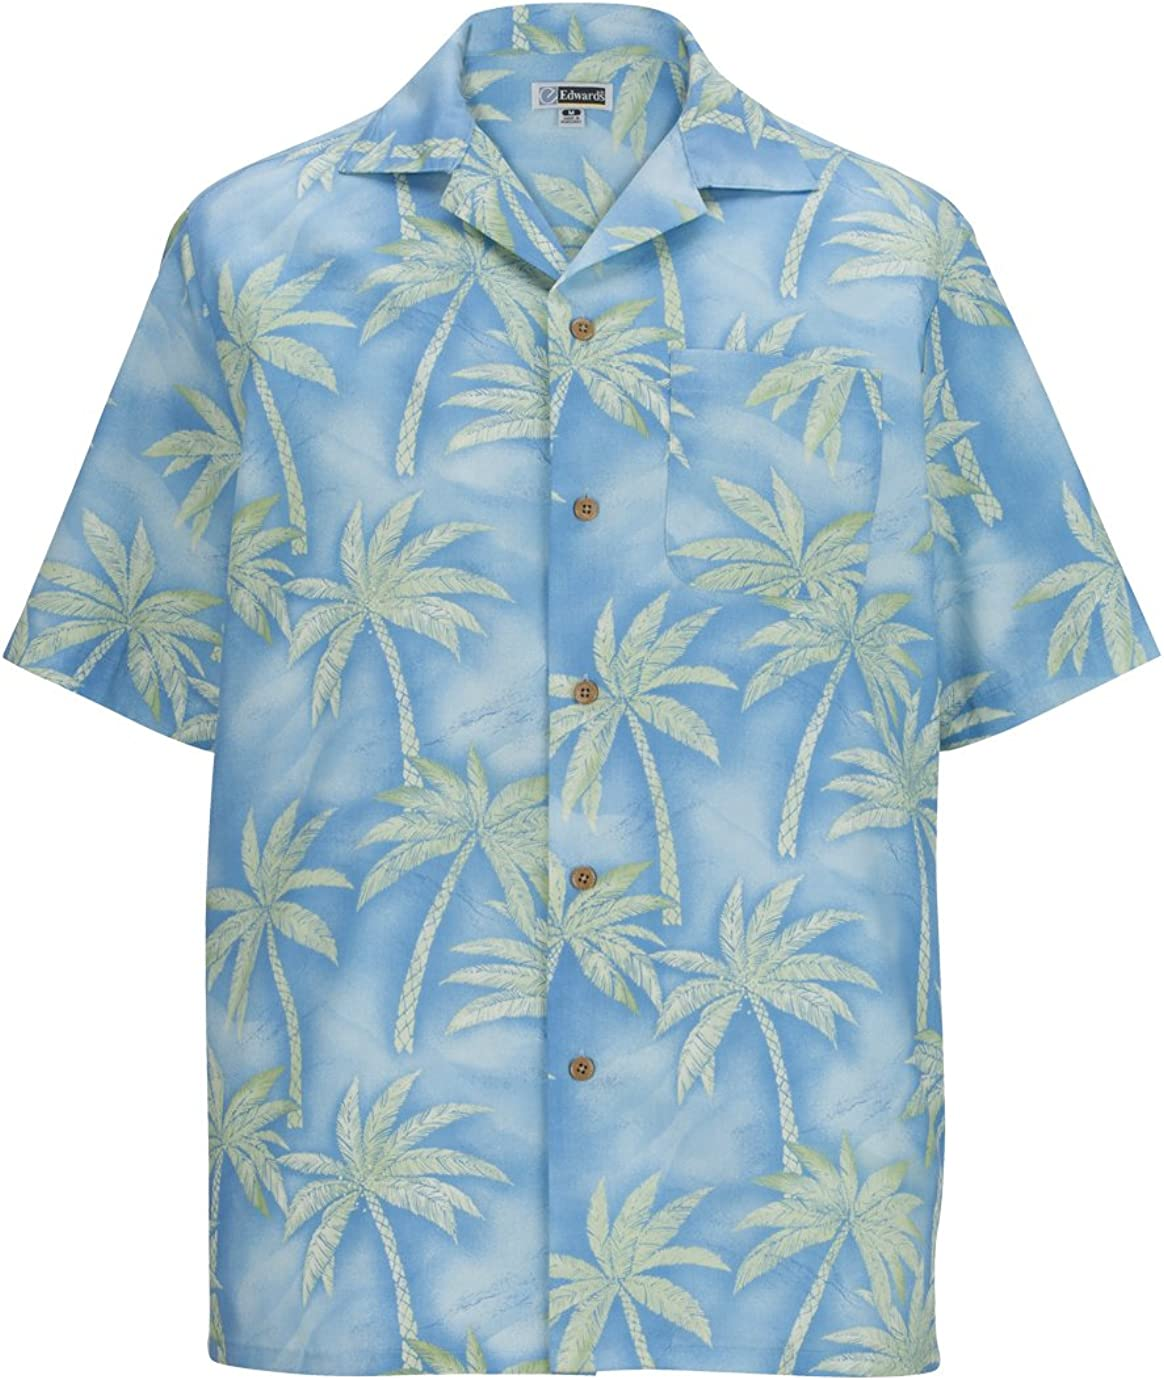 Edwards Garment Comfort Palm Tree Traditional Camp Collar Polyester Shirt